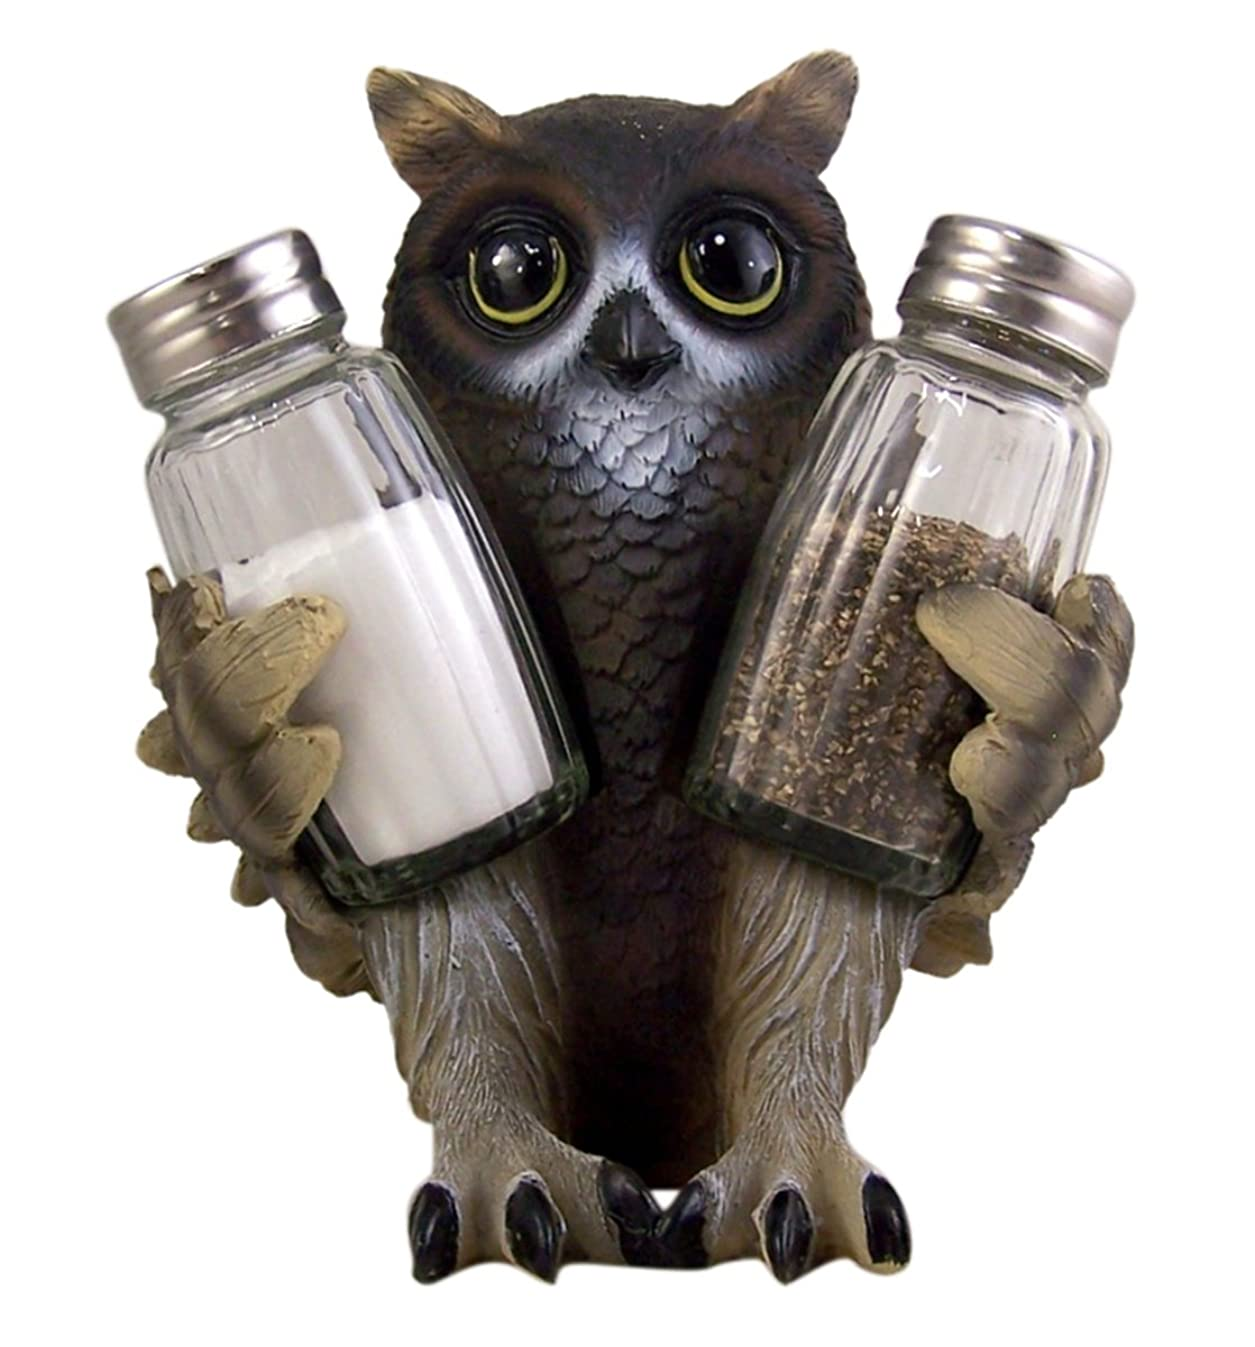 Spice Wisely Owl Salt and Pepper Shaker Holder (Shakers Included)